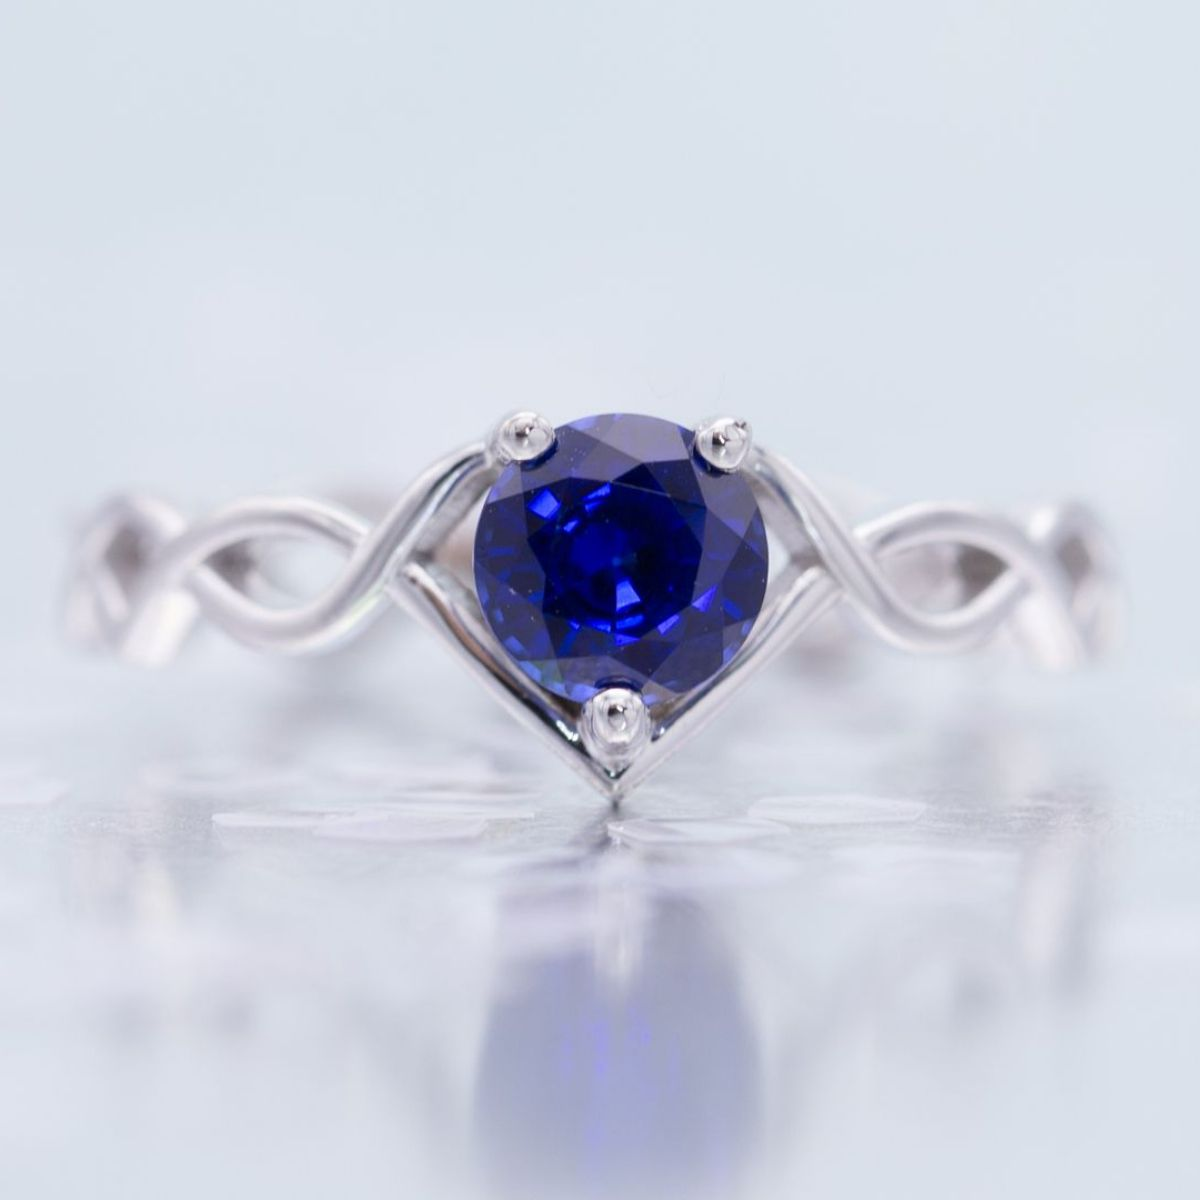 heated carats report video gem deep natural color square shape blue with sapphire gia img carat